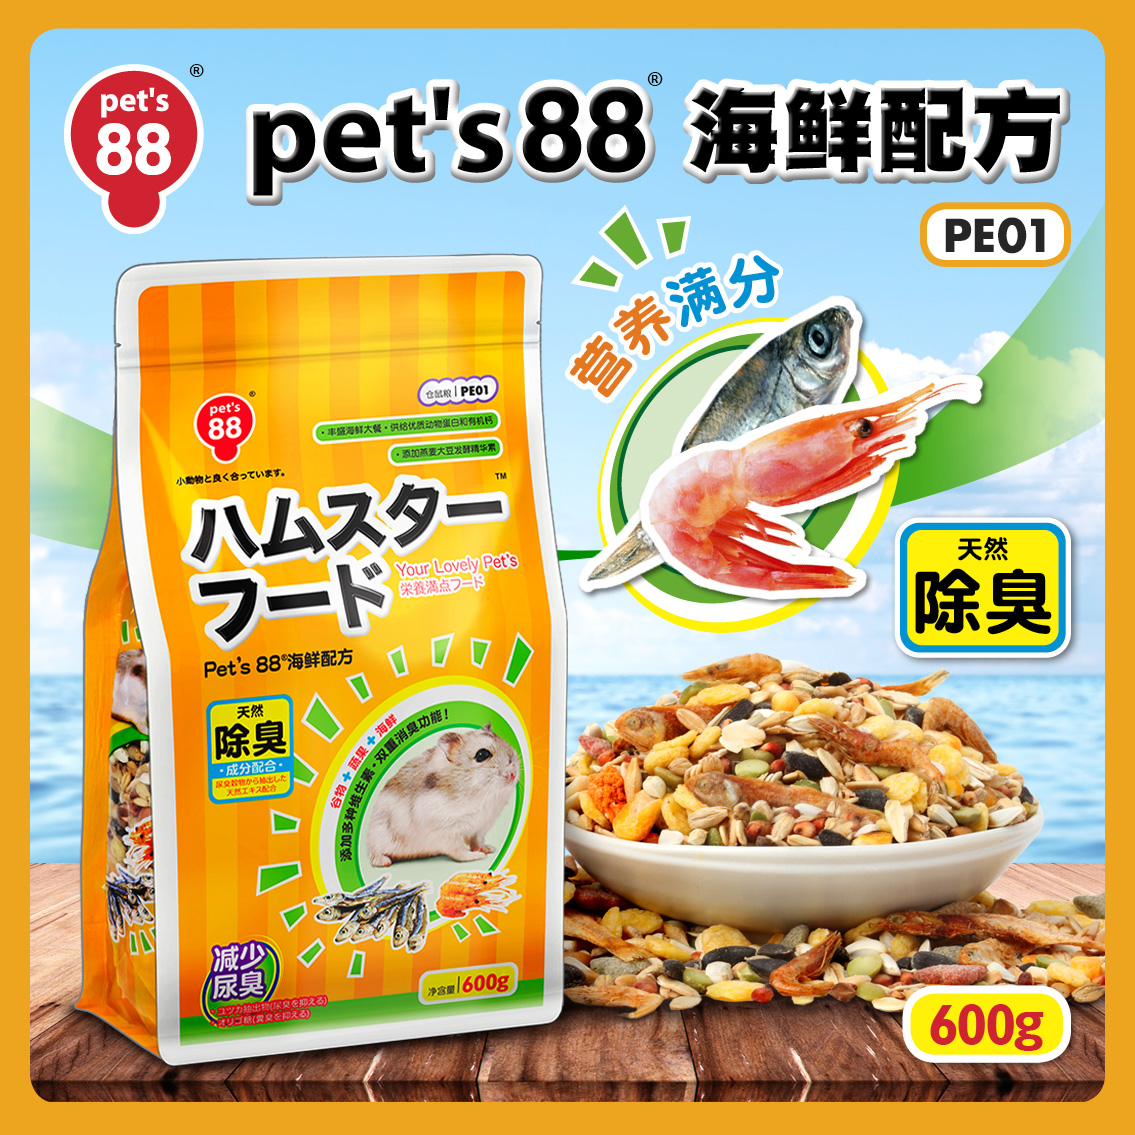 [鼠鼠人家小宠乐园 仓鼠 兔子 龙猫 豚鼠 用品饲料,零食]滨田海鲜仓鼠粮 600G 除臭配方 月销量26件仅售9元